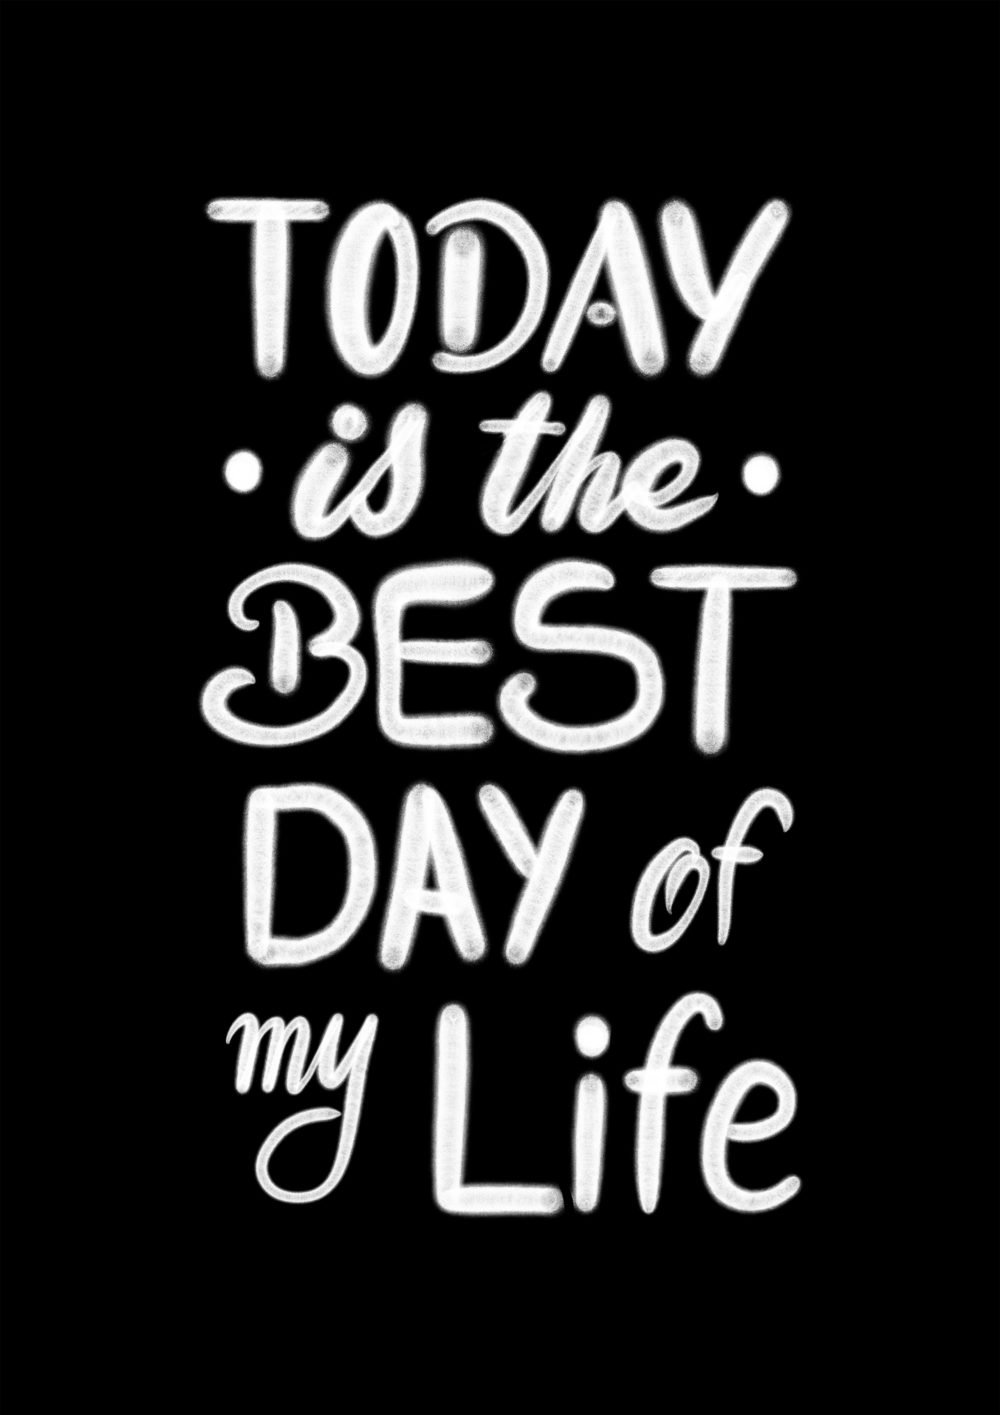 Today is the best day of my life - hand lettering motivational design isolated on black